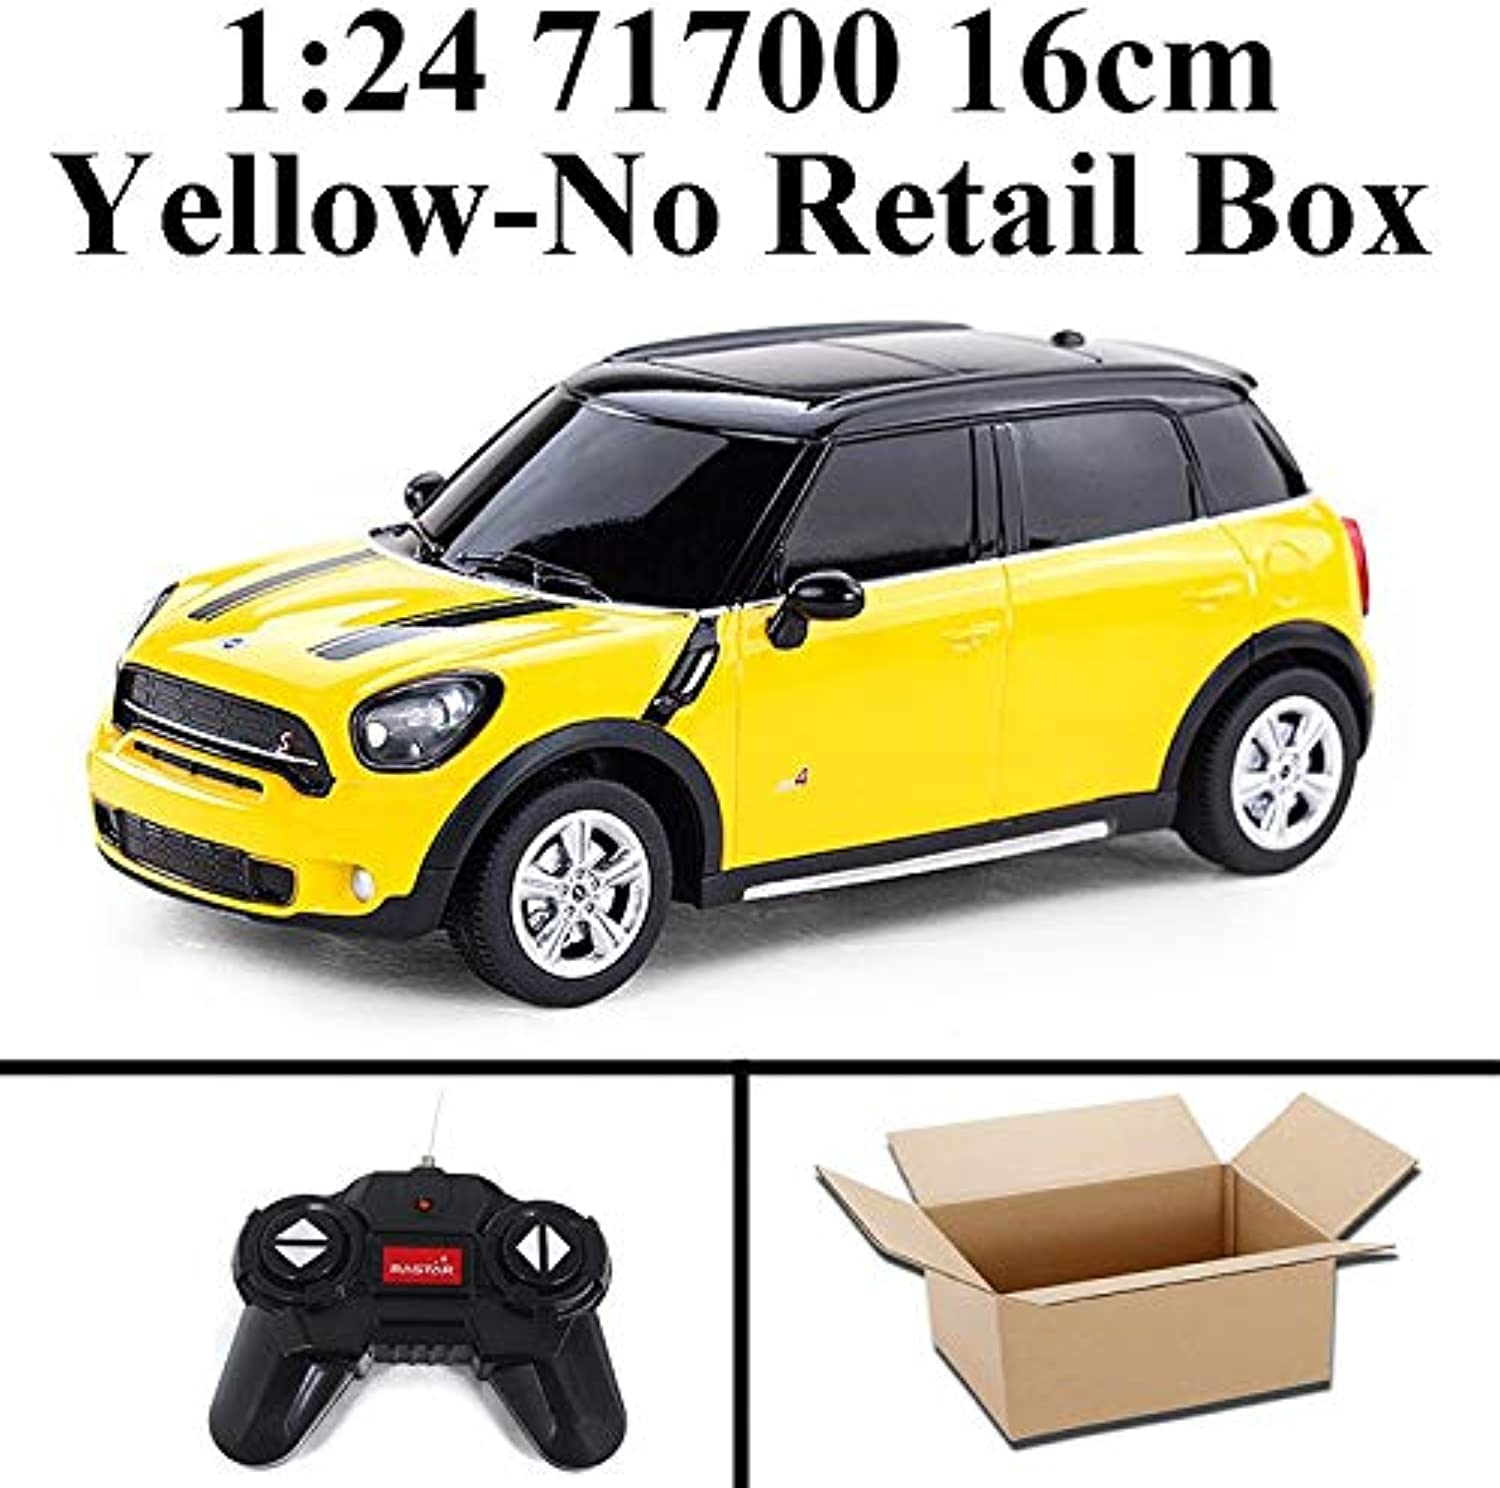 Generic Rastar 1 24 Electric Mini RC Cars Collection Remote Control Toys Radio Controlled Cars Toys for Boys Kids Gifts Girls Toys 2999 71700 Yellow No Box